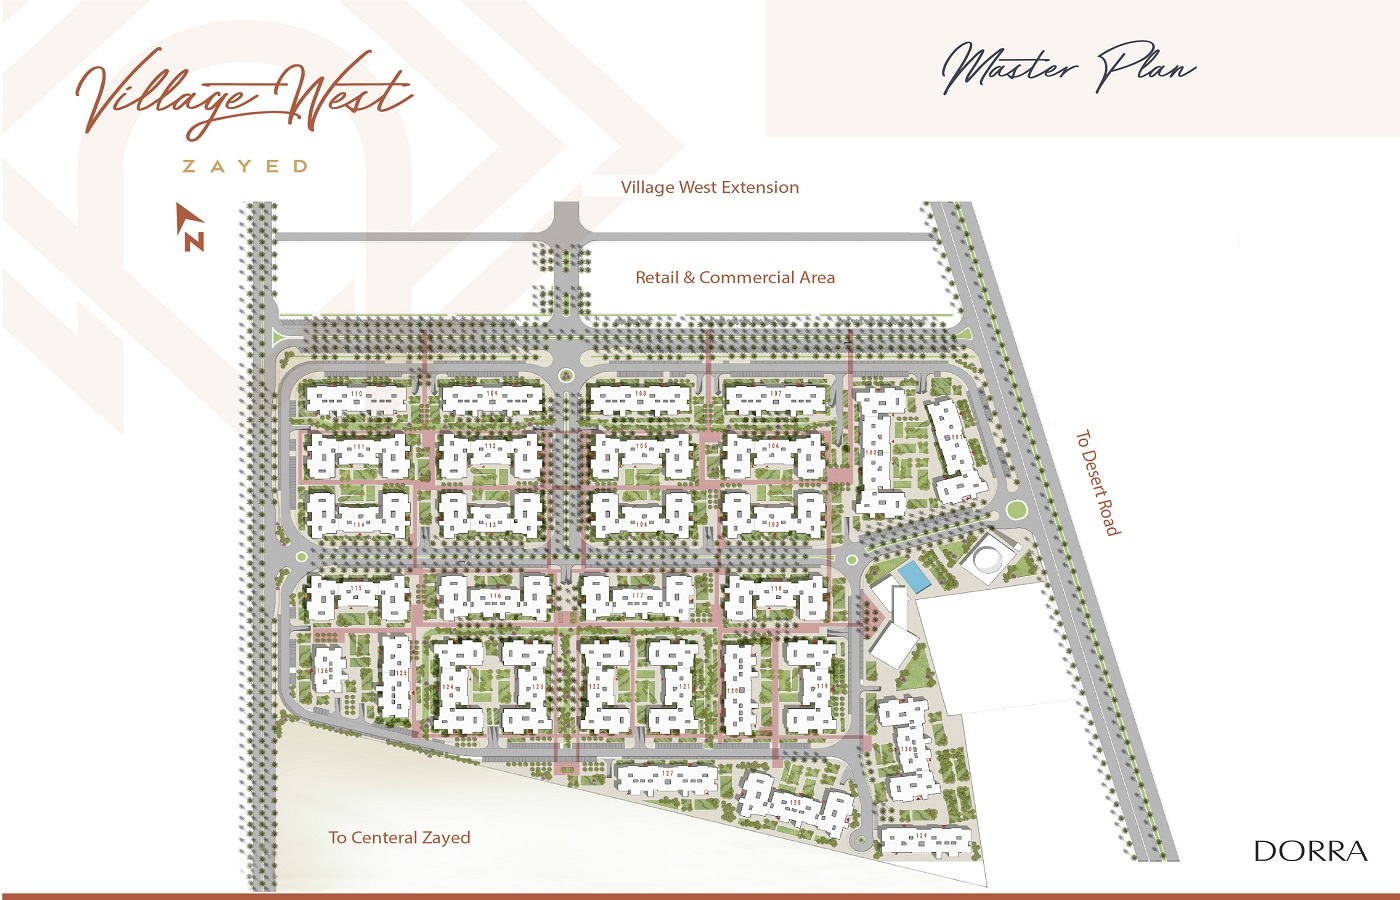 Village West Sheikh Zayed Compounds Dorra Developments - Fully Finished Apartments Village West Master Plan, Location and Prices -- 8 Gates Real Estate Egypt (0)